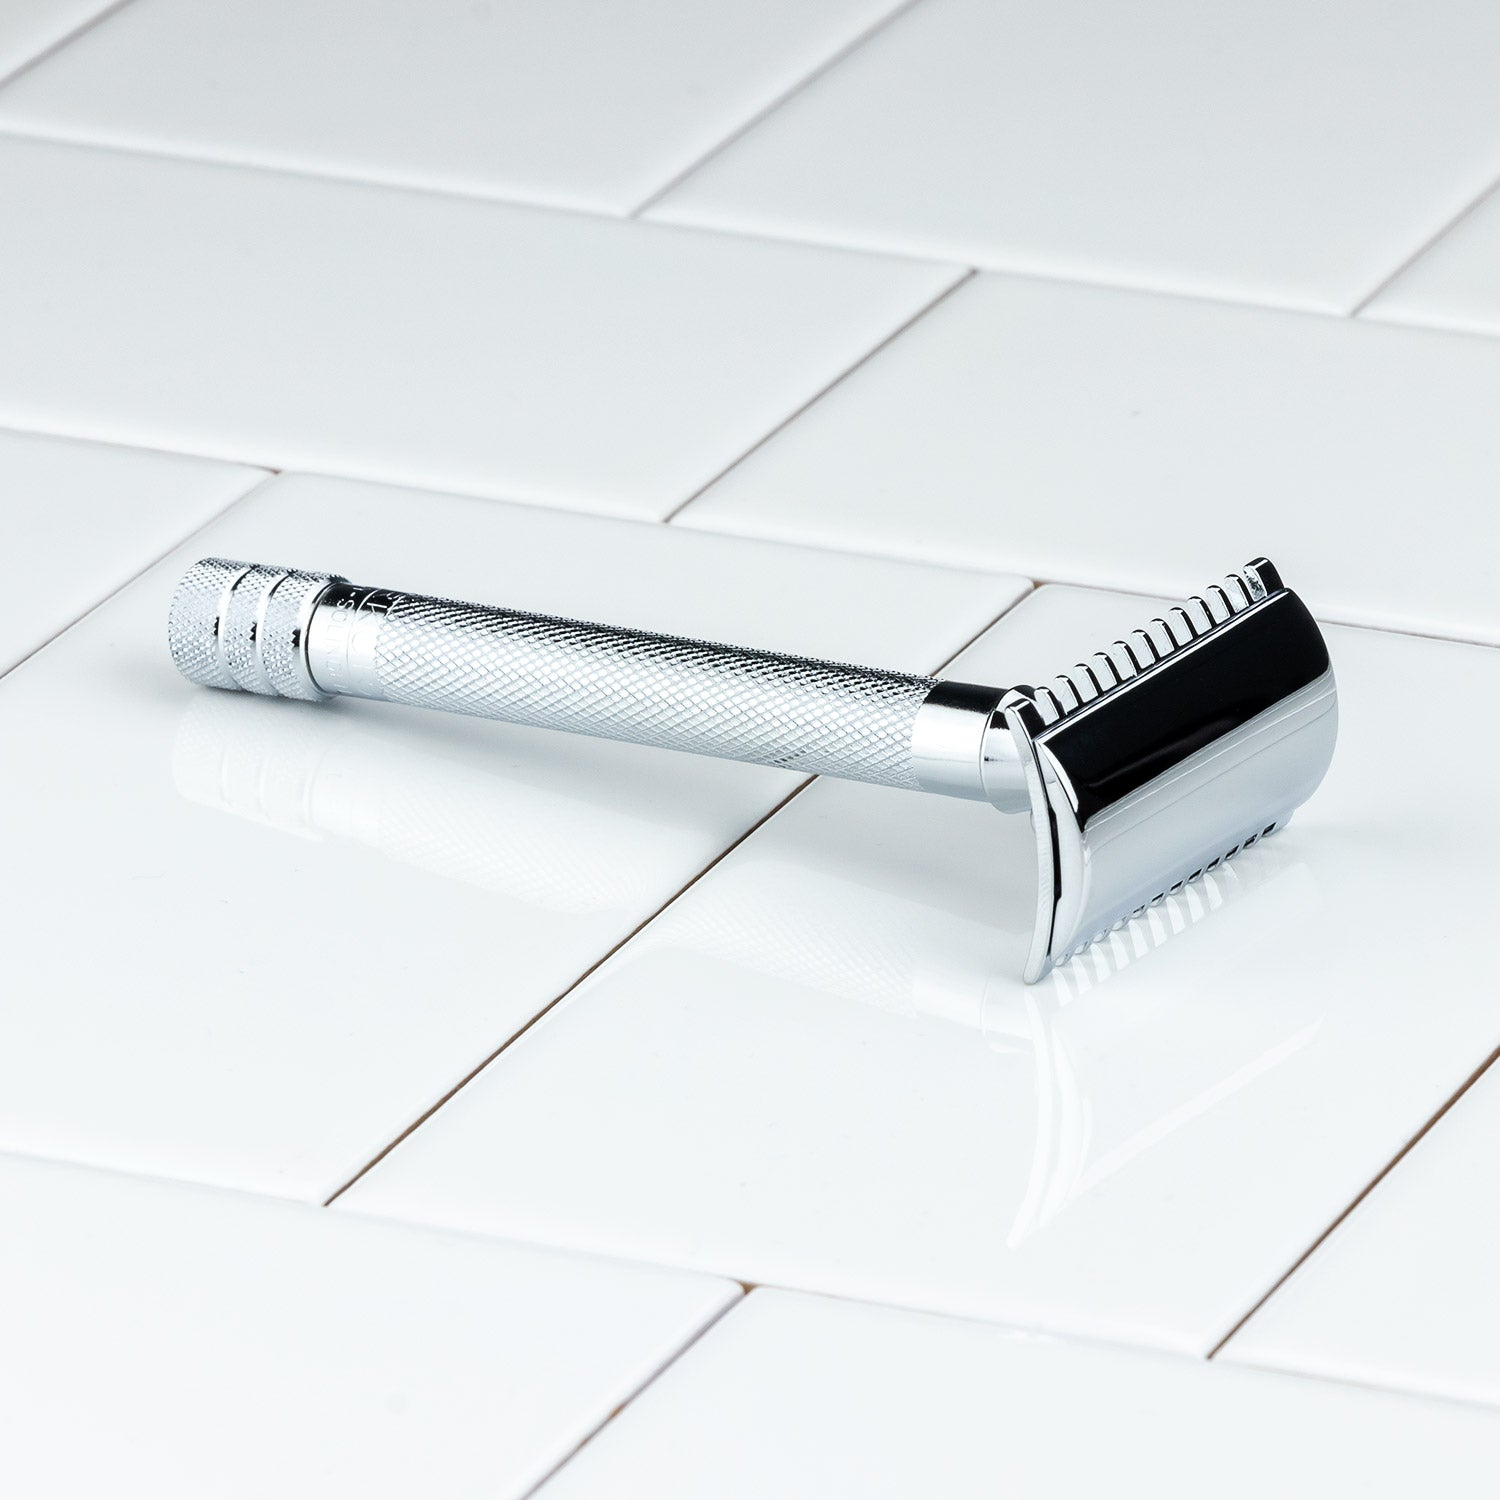 Merkur Double Open Tooth Comb 25C DE Safety Razor